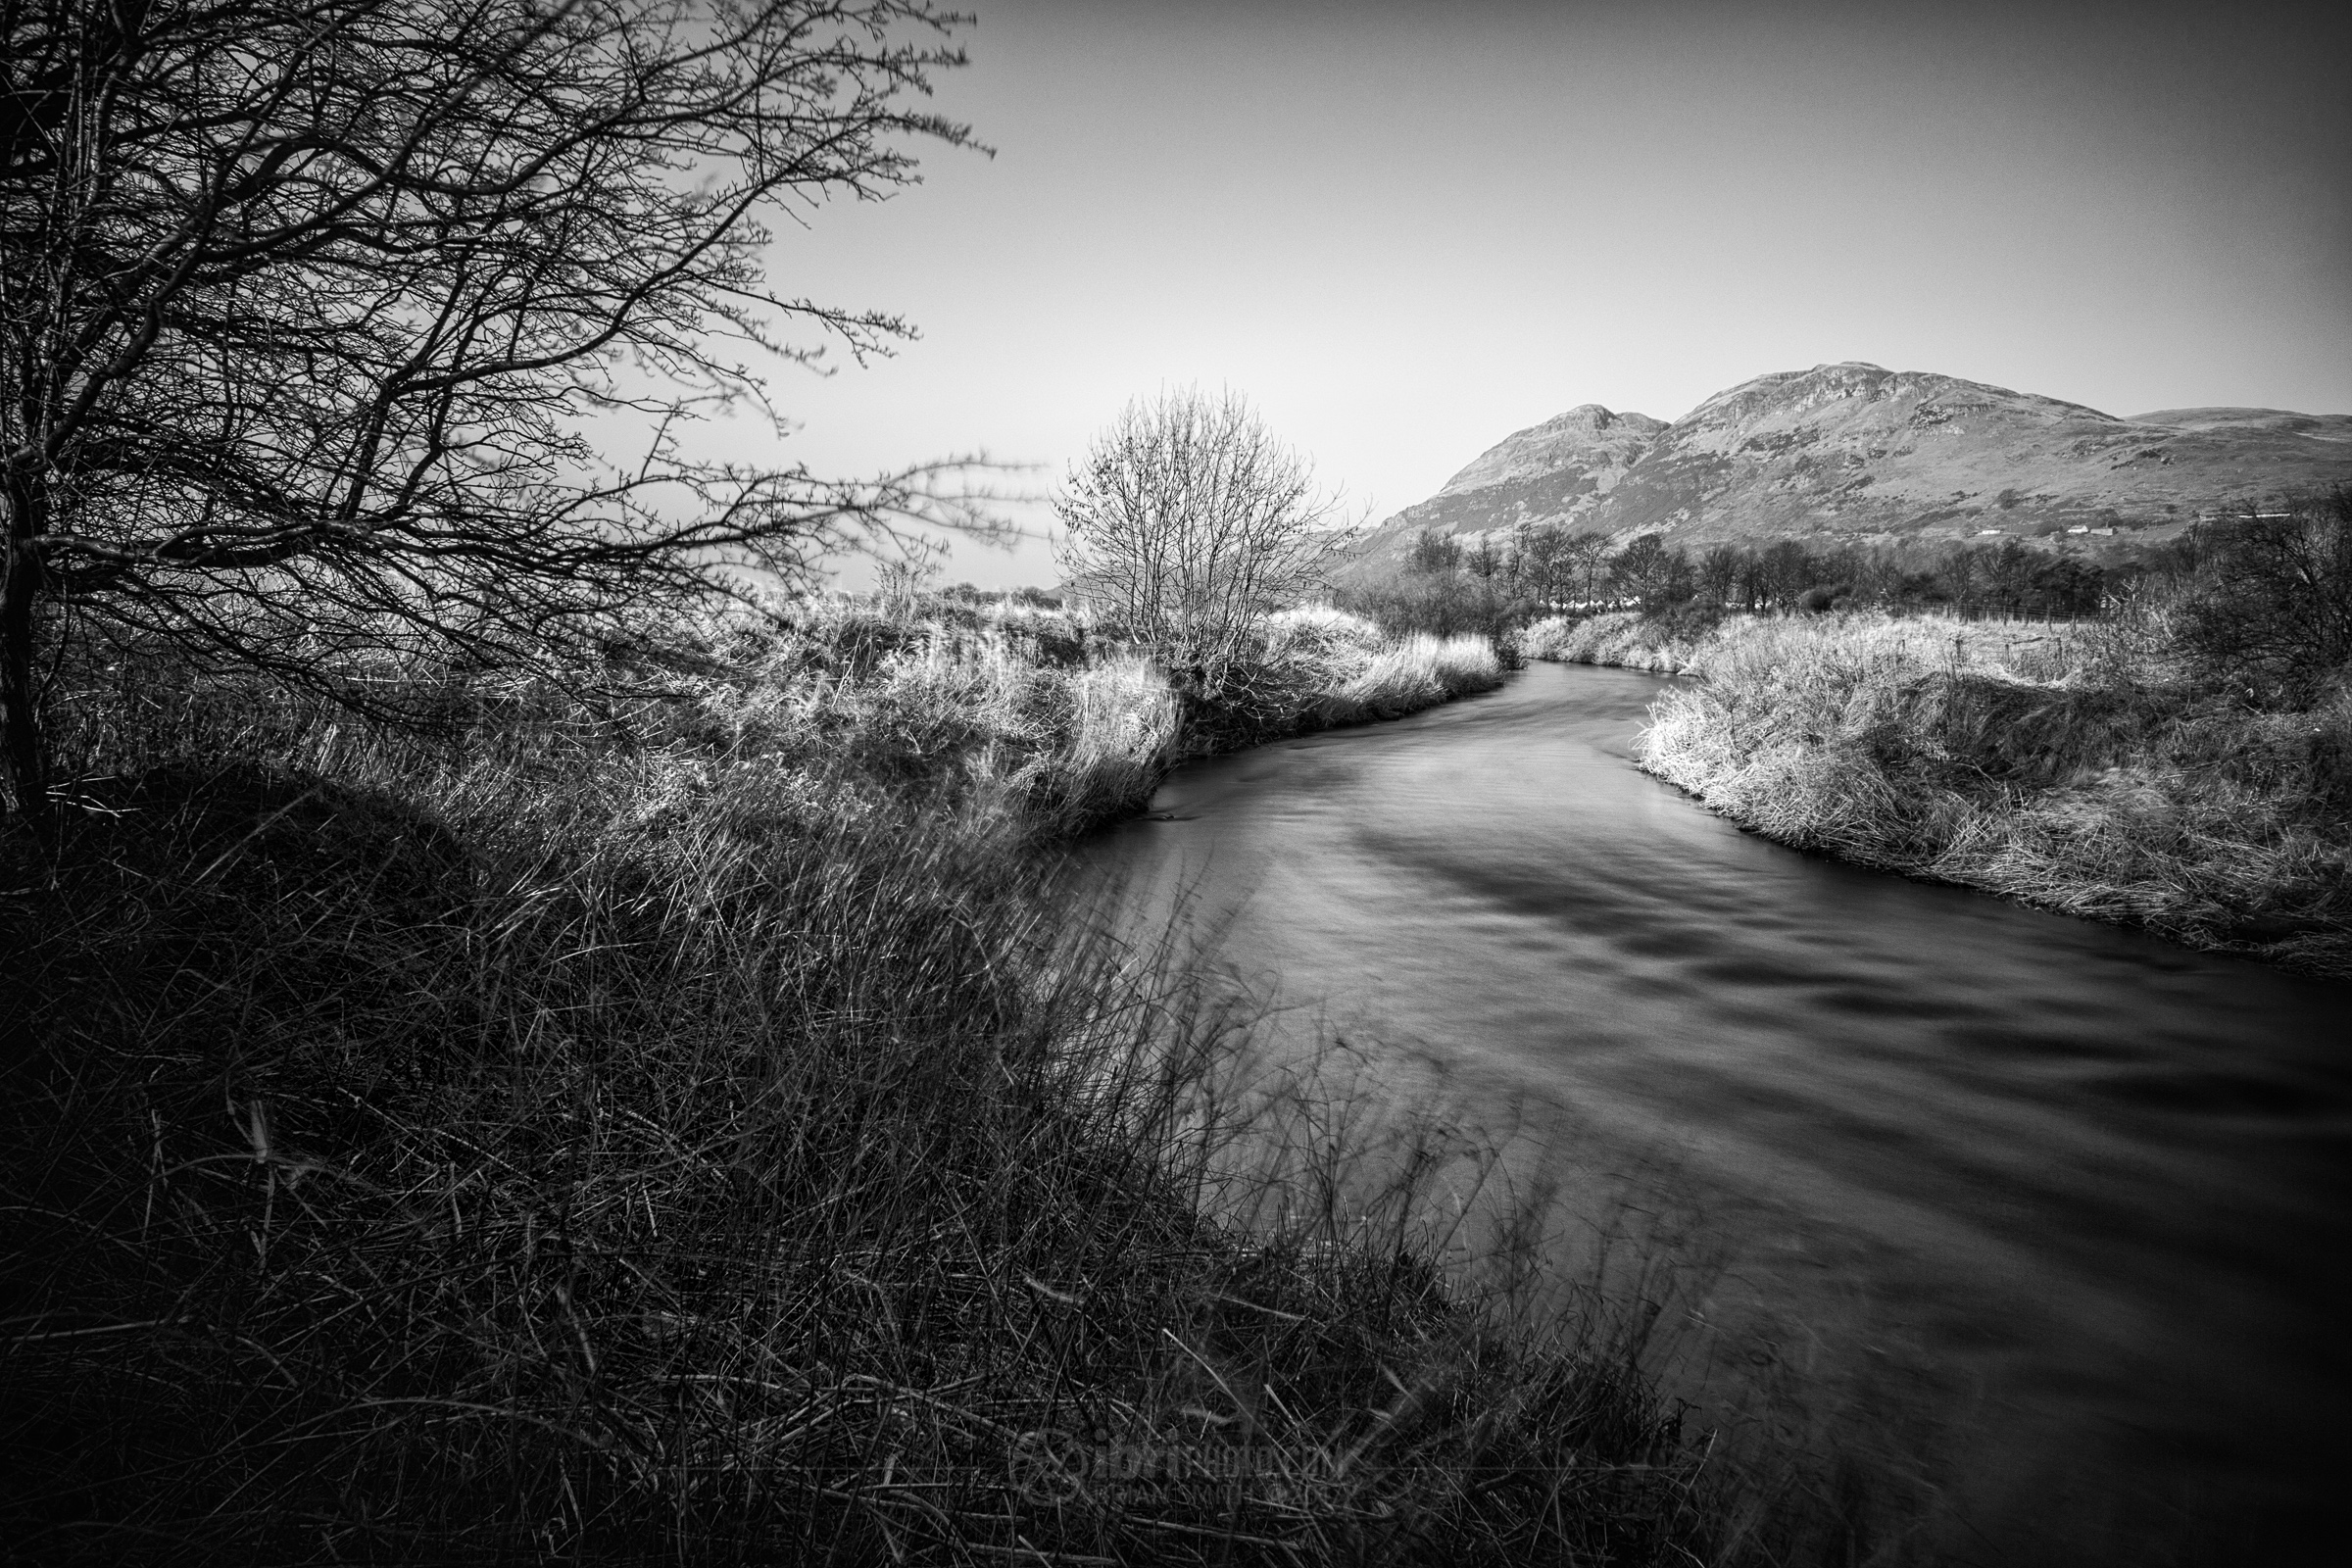 The River snakes its way across Clackmannanshire, spilling out in the Forth a few miles down river from here.